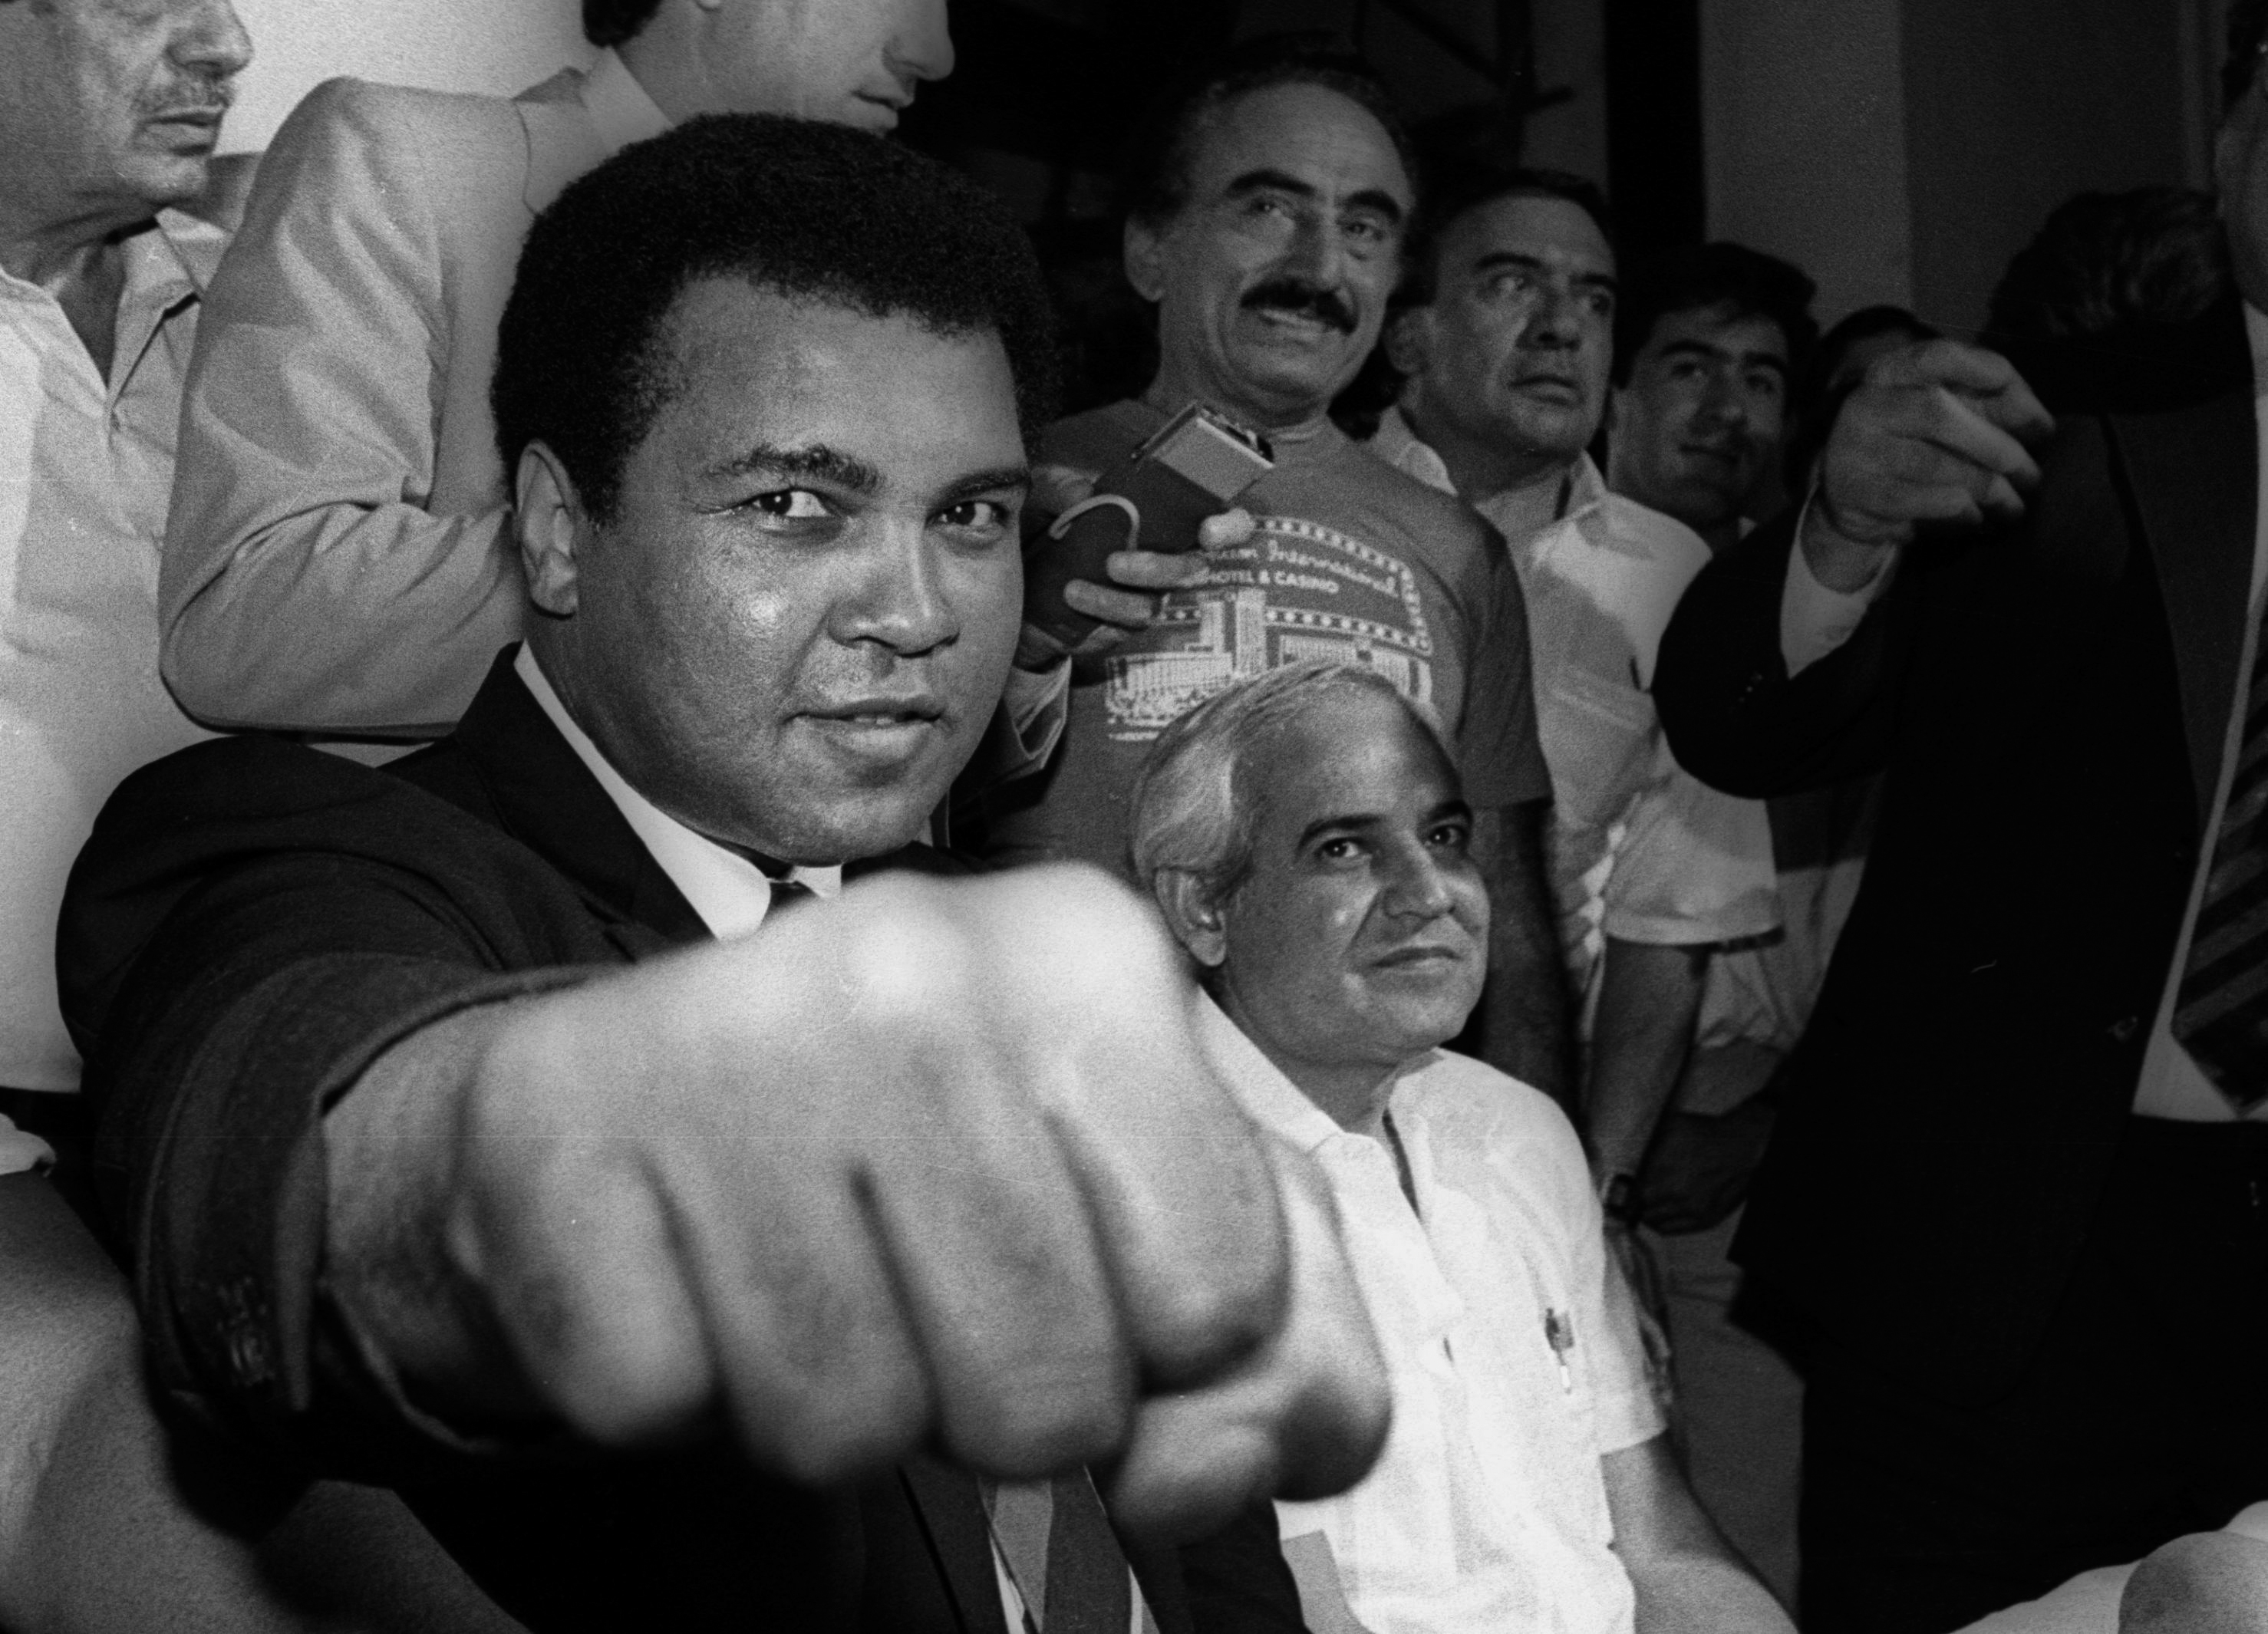 A smiling Muhammad Ali shows his fist to reporters during an impromptu press conference in Mexico City July 9, 1987.  - RTR1N6MB